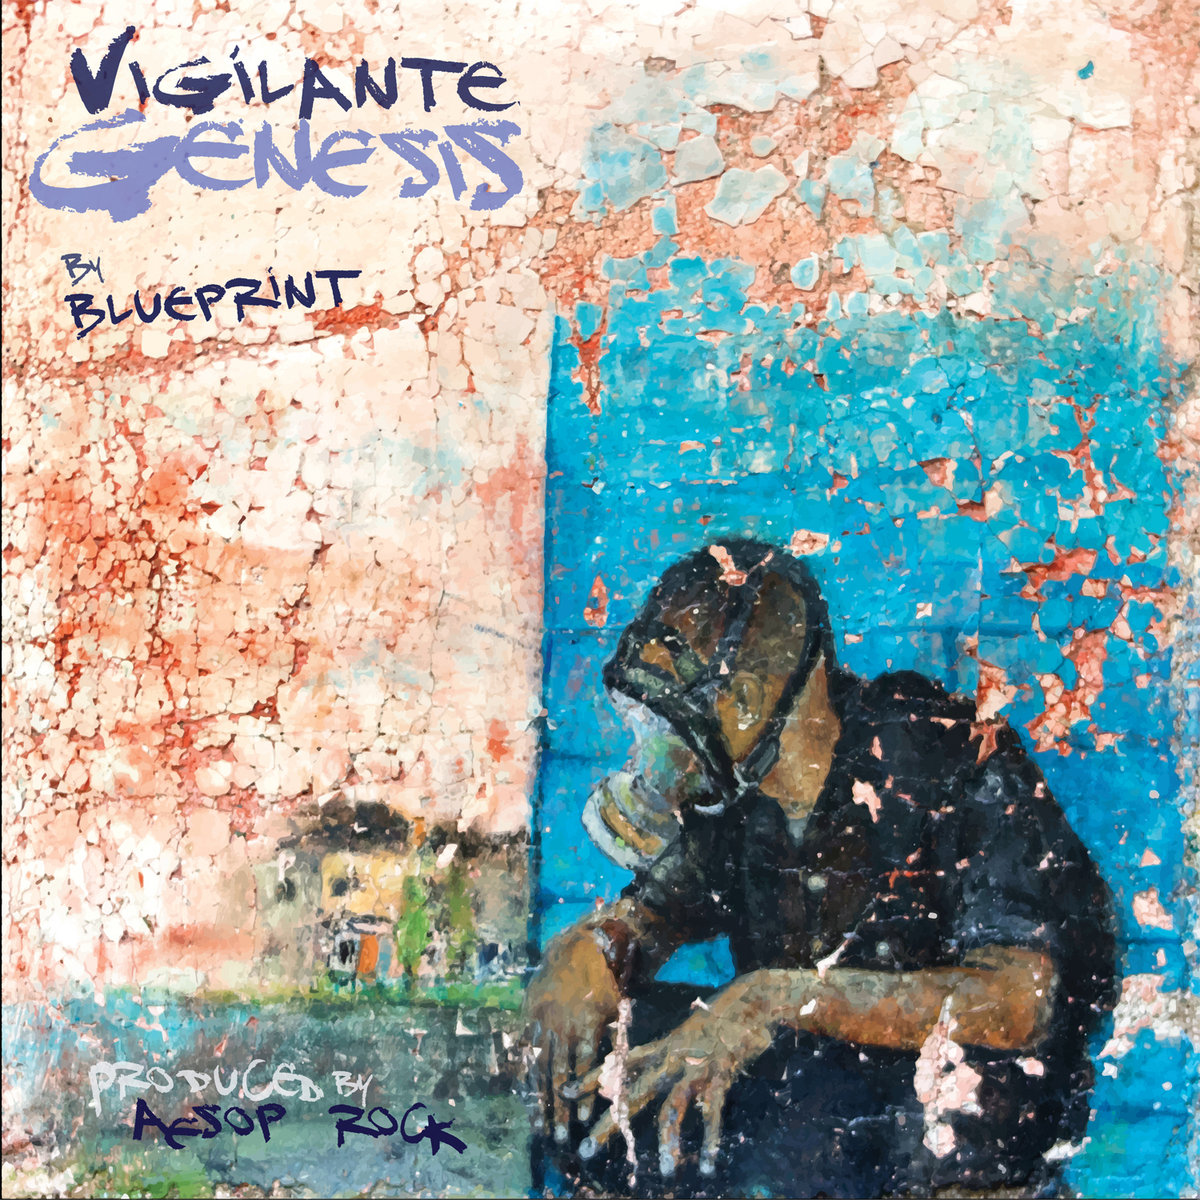 Vigilante genesis ep prod aesop rock deluxe digital version by blueprint malvernweather Image collections